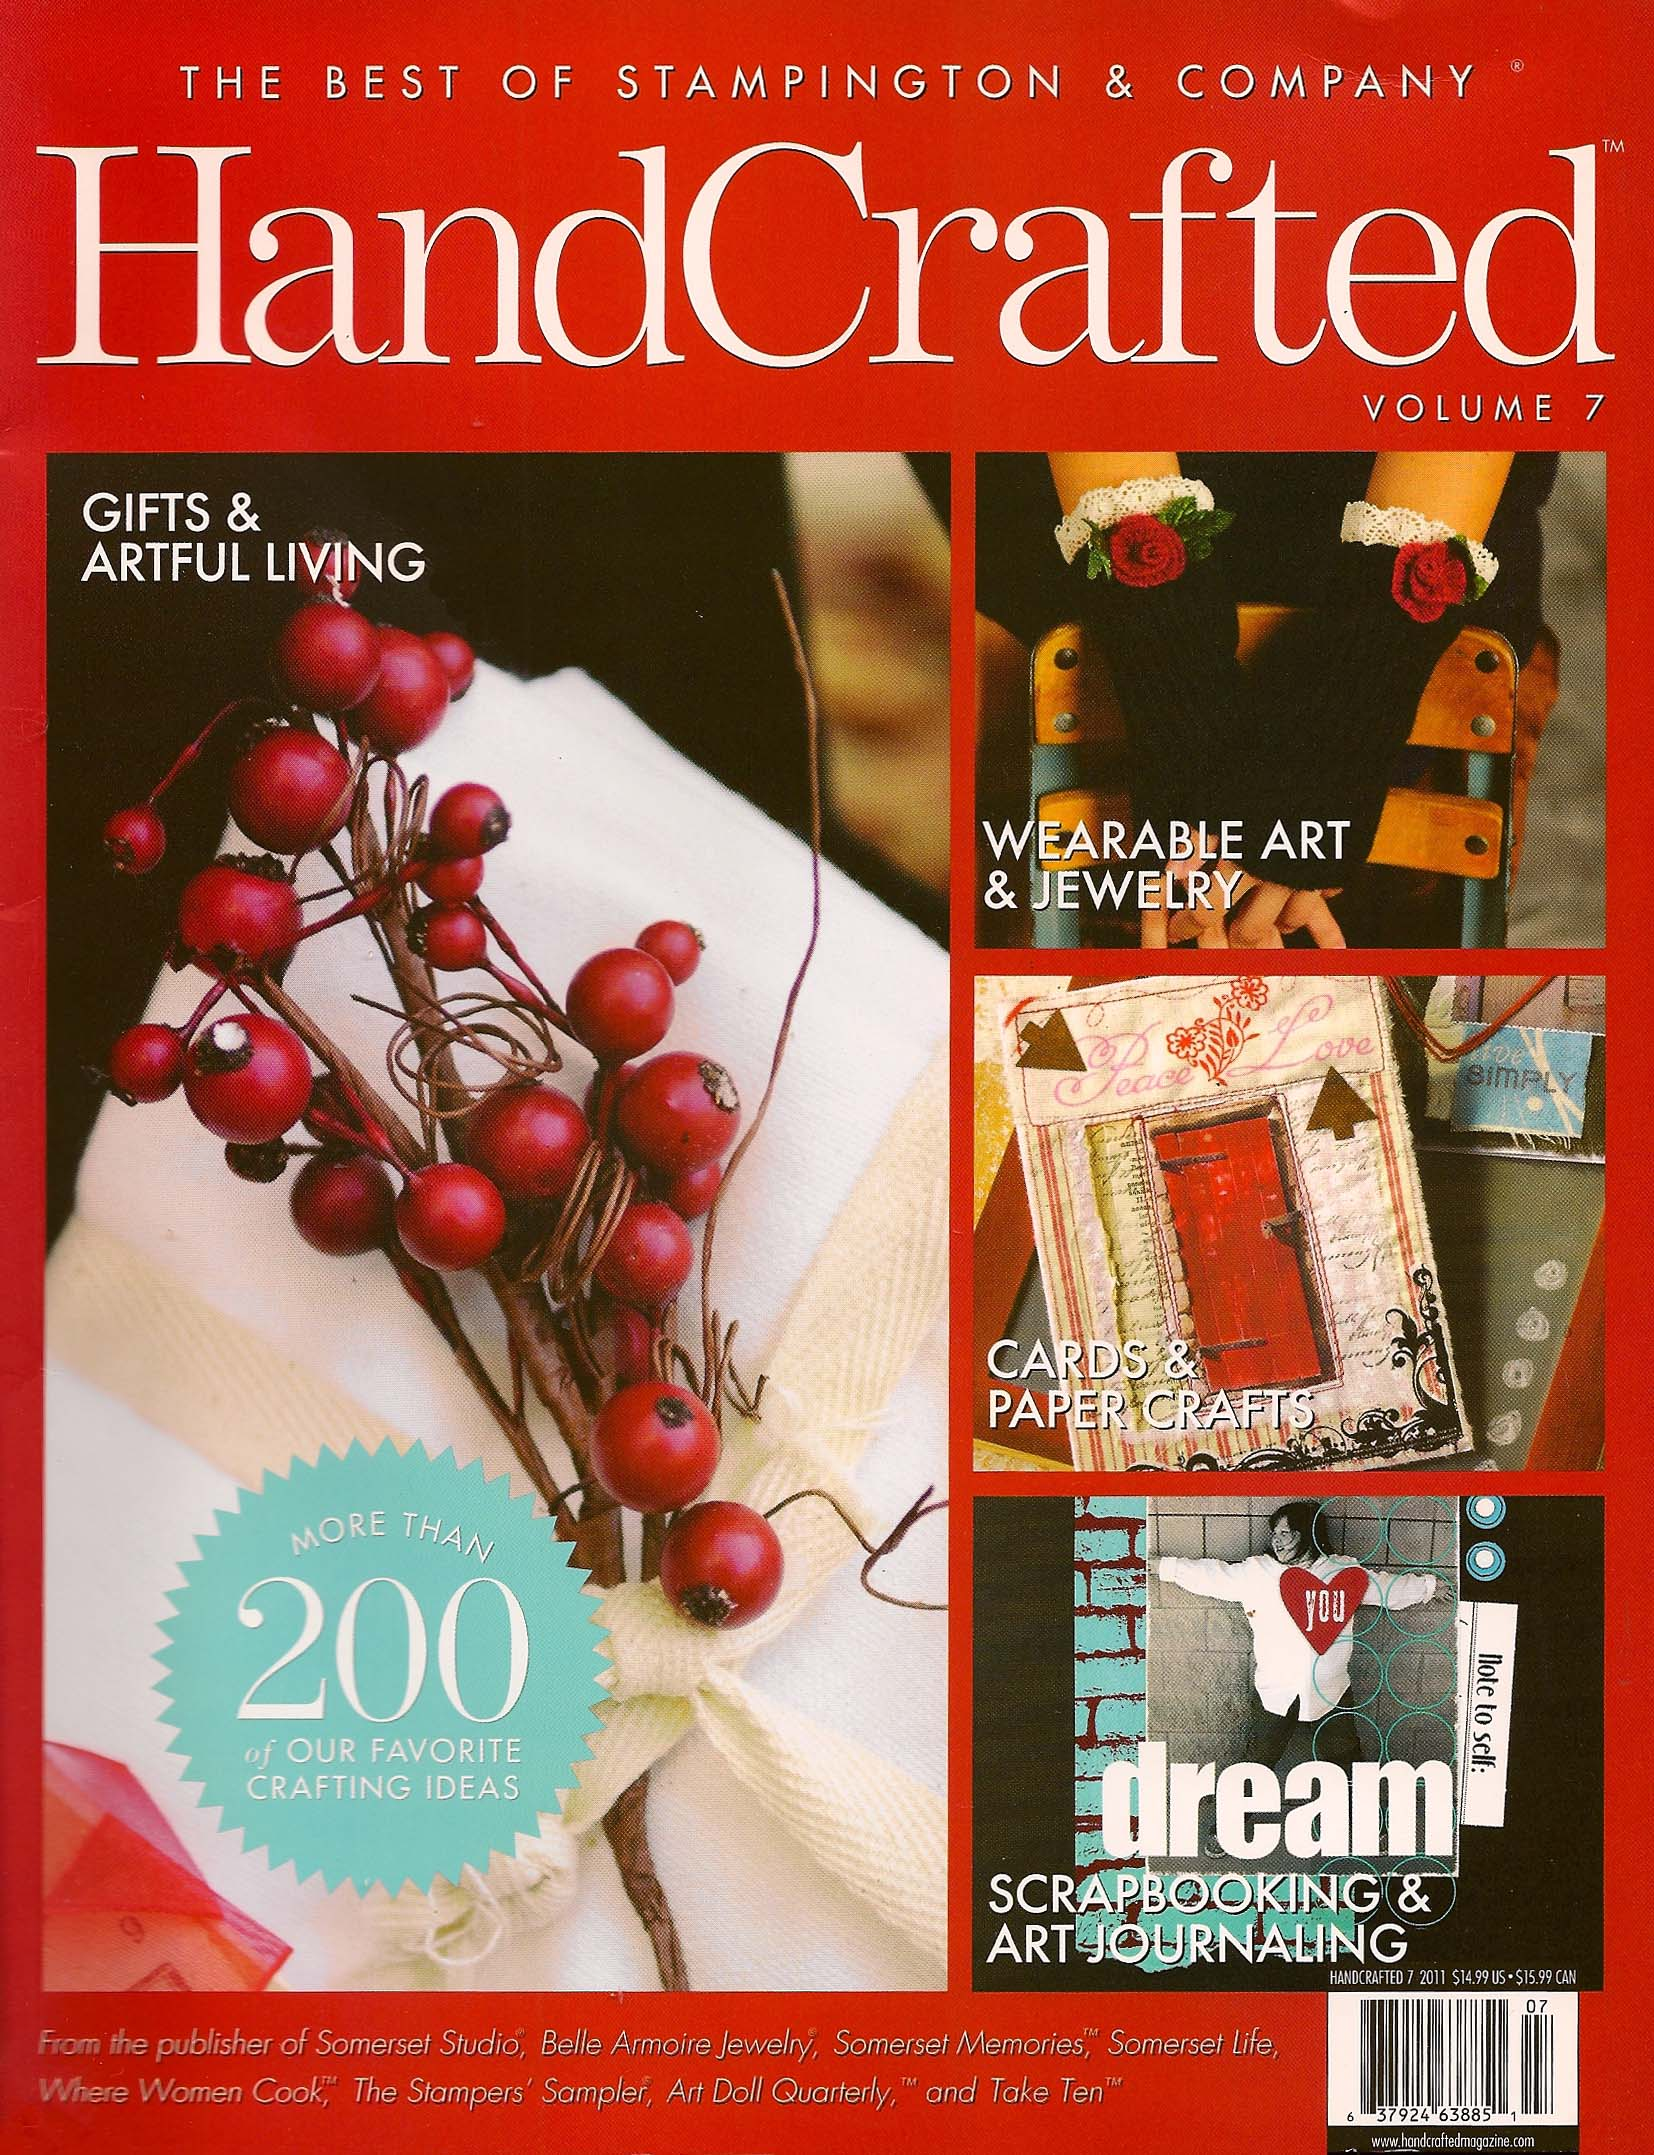 handcrafted magazine cover.jpg